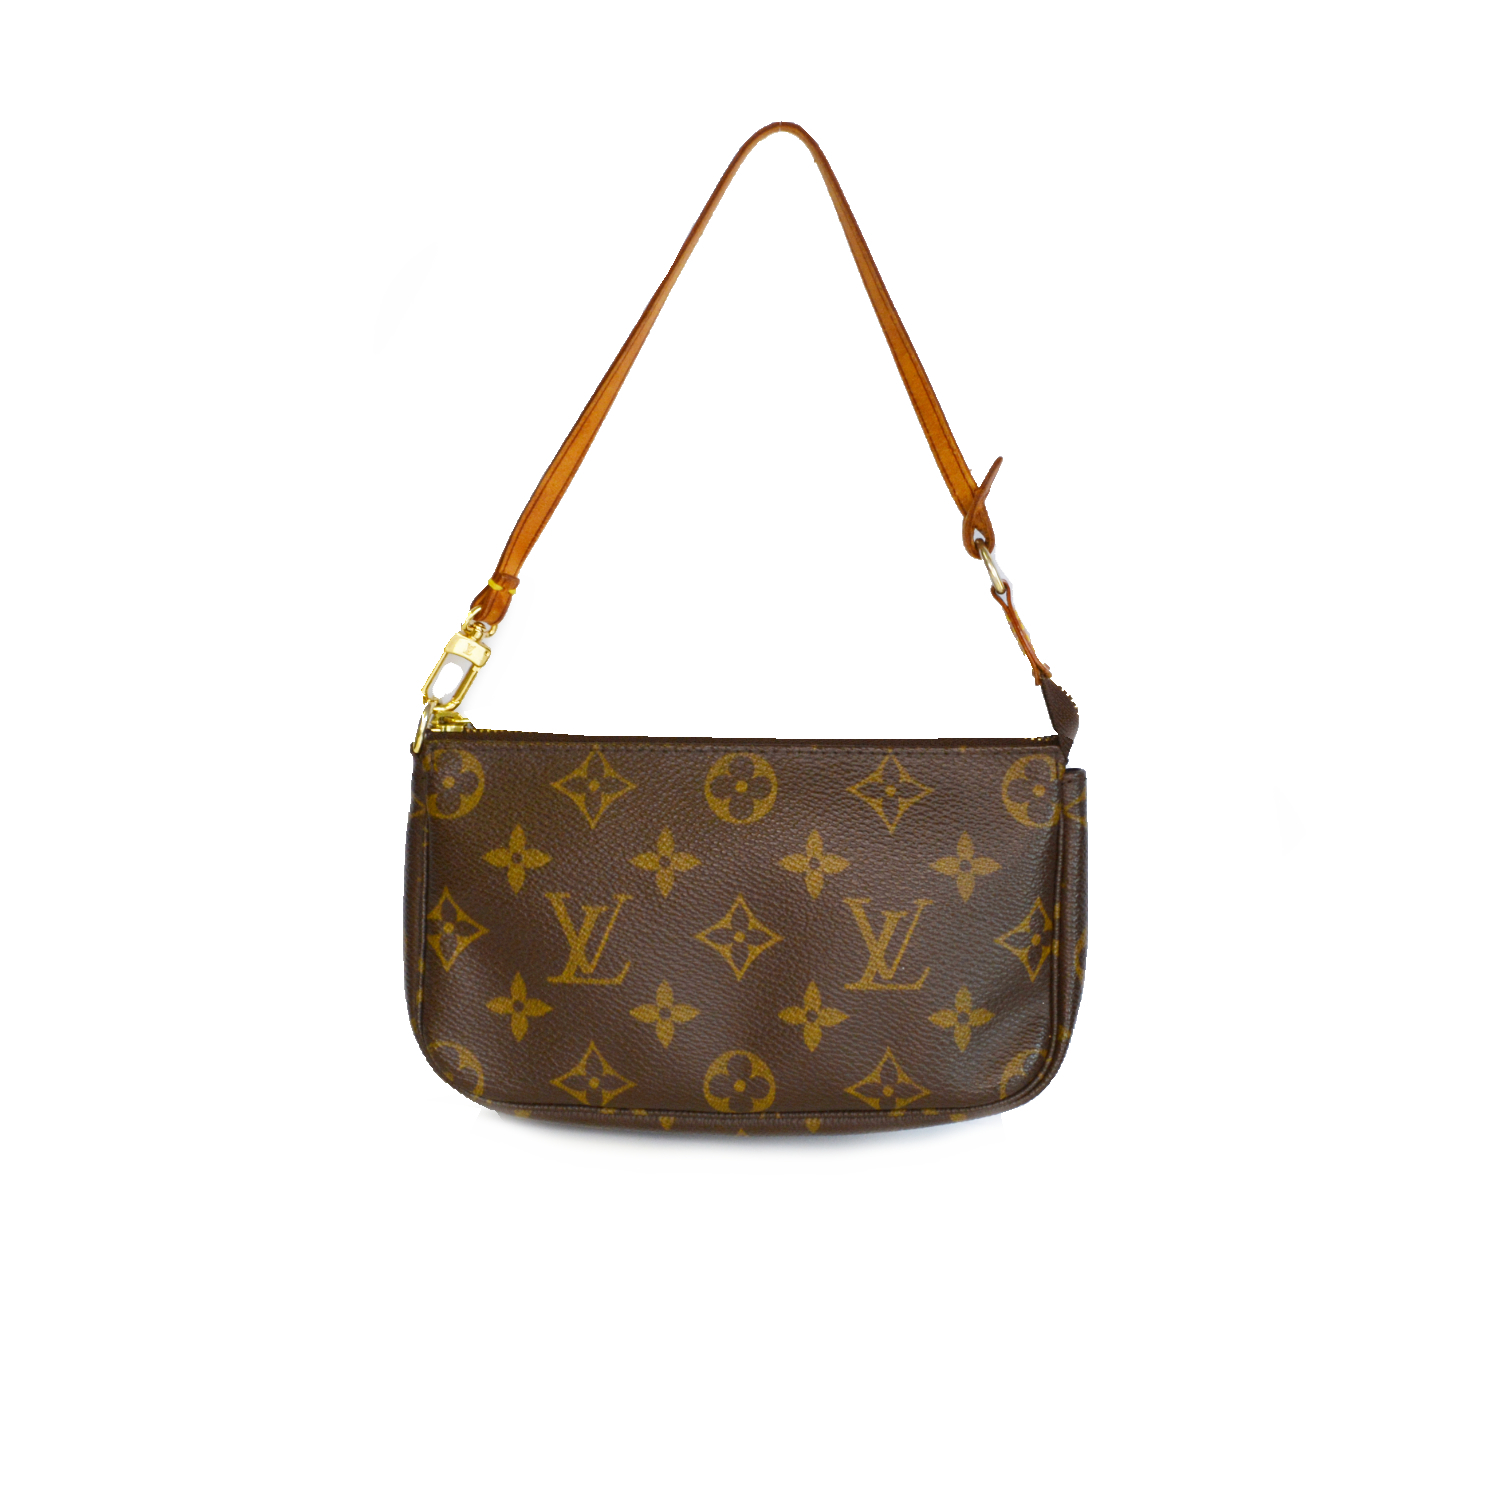 Vintage Louis Vuitton Mini Pochette Shoulder Bag | NITRYL